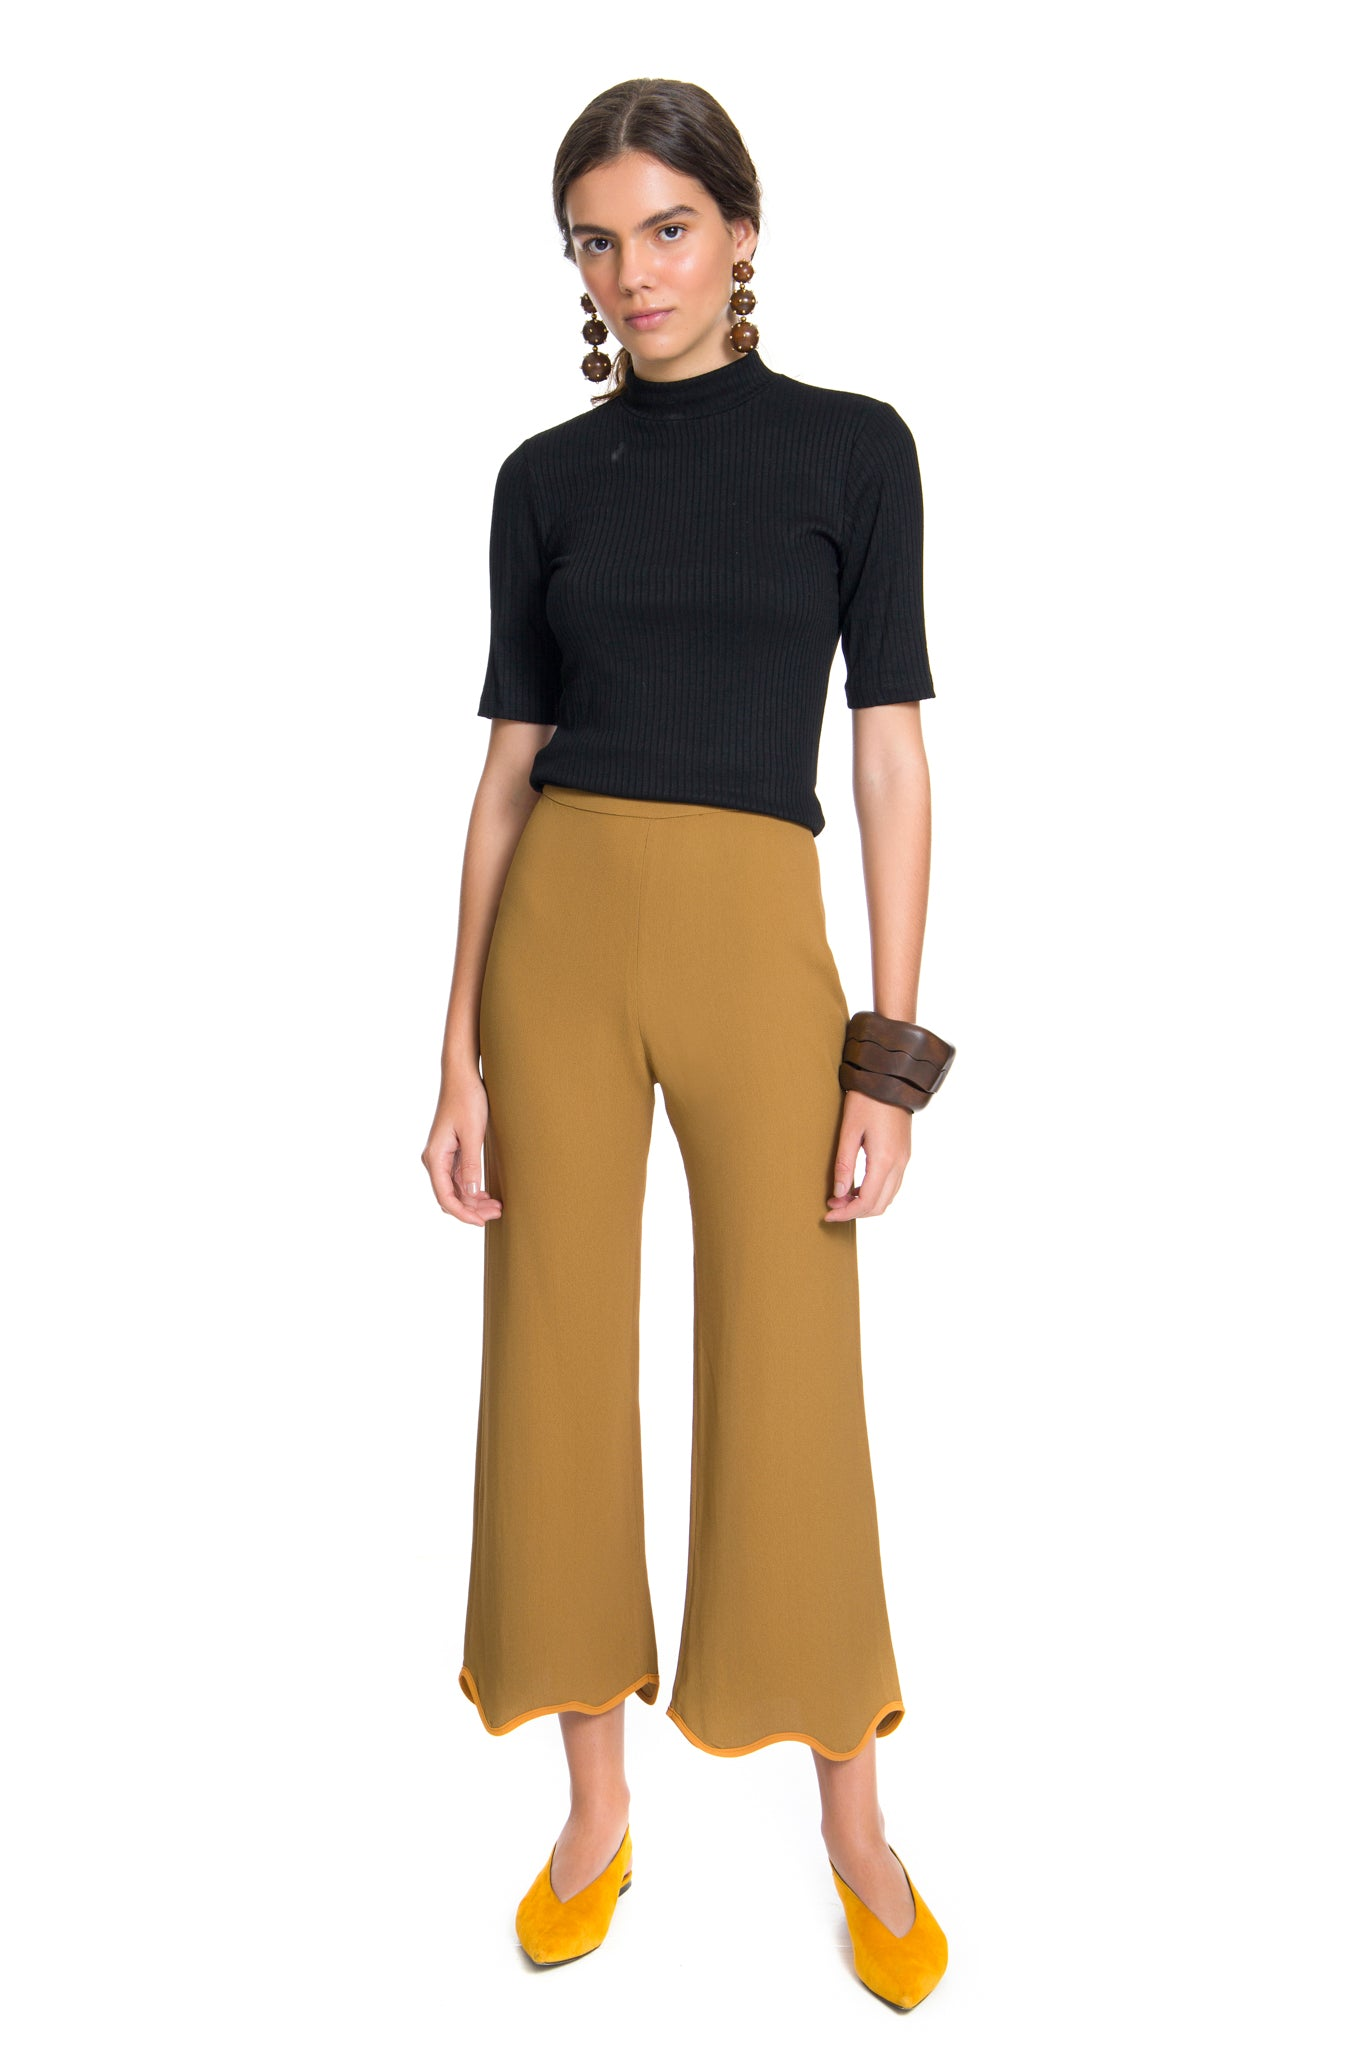 CAMELO/CARAMELO 70'S TROUSERS